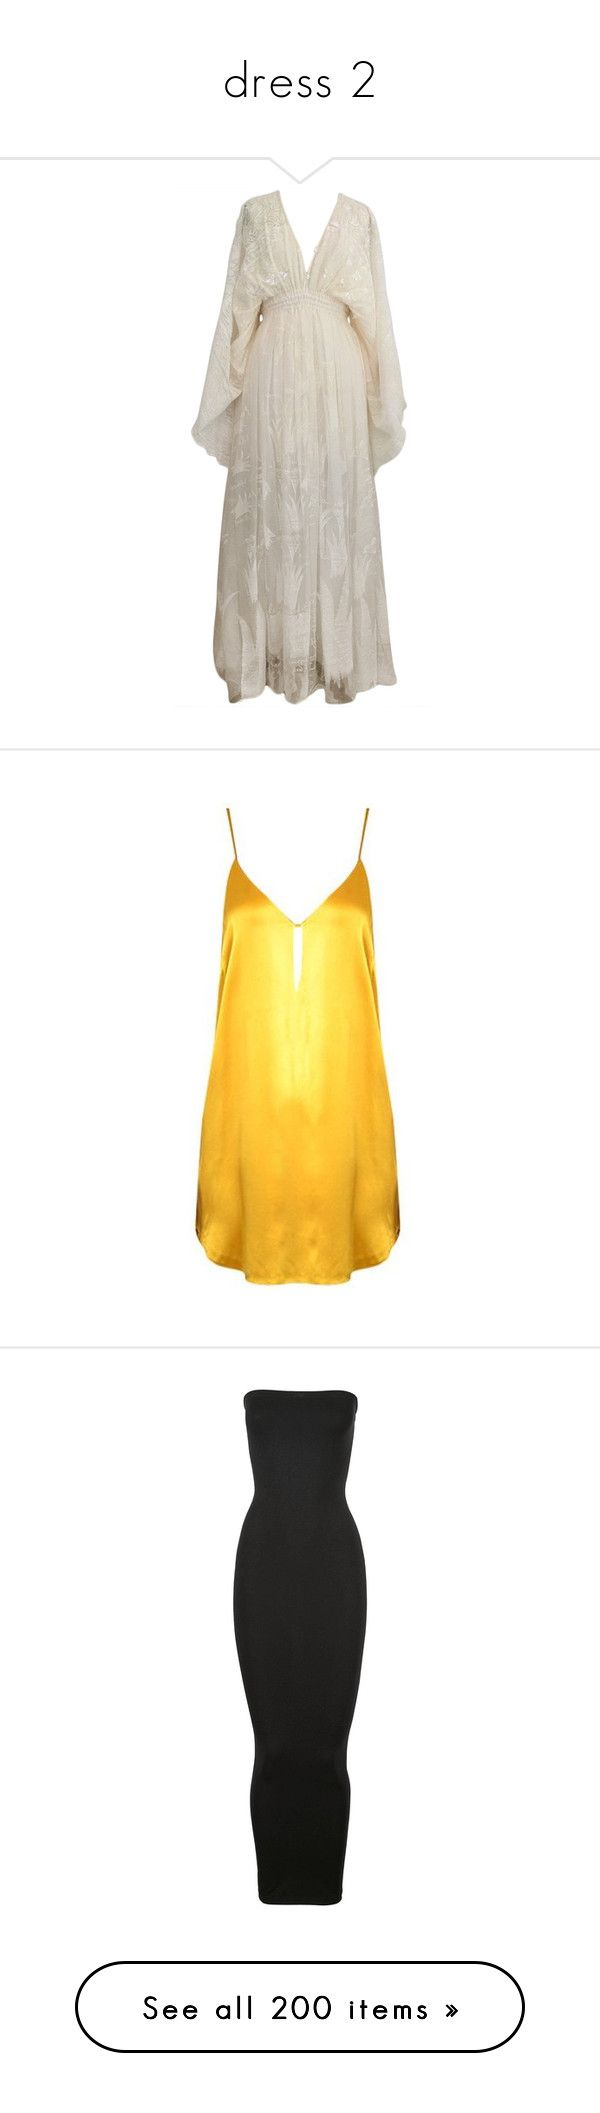 """dress 2"" by abcdfuckyou ❤ liked on Polyvore featuring dresses, gowns, long dresses, silk gown, vintage gowns, vintage ball gowns, white gown, white silk dress, yellow dress and yellow silk dress"